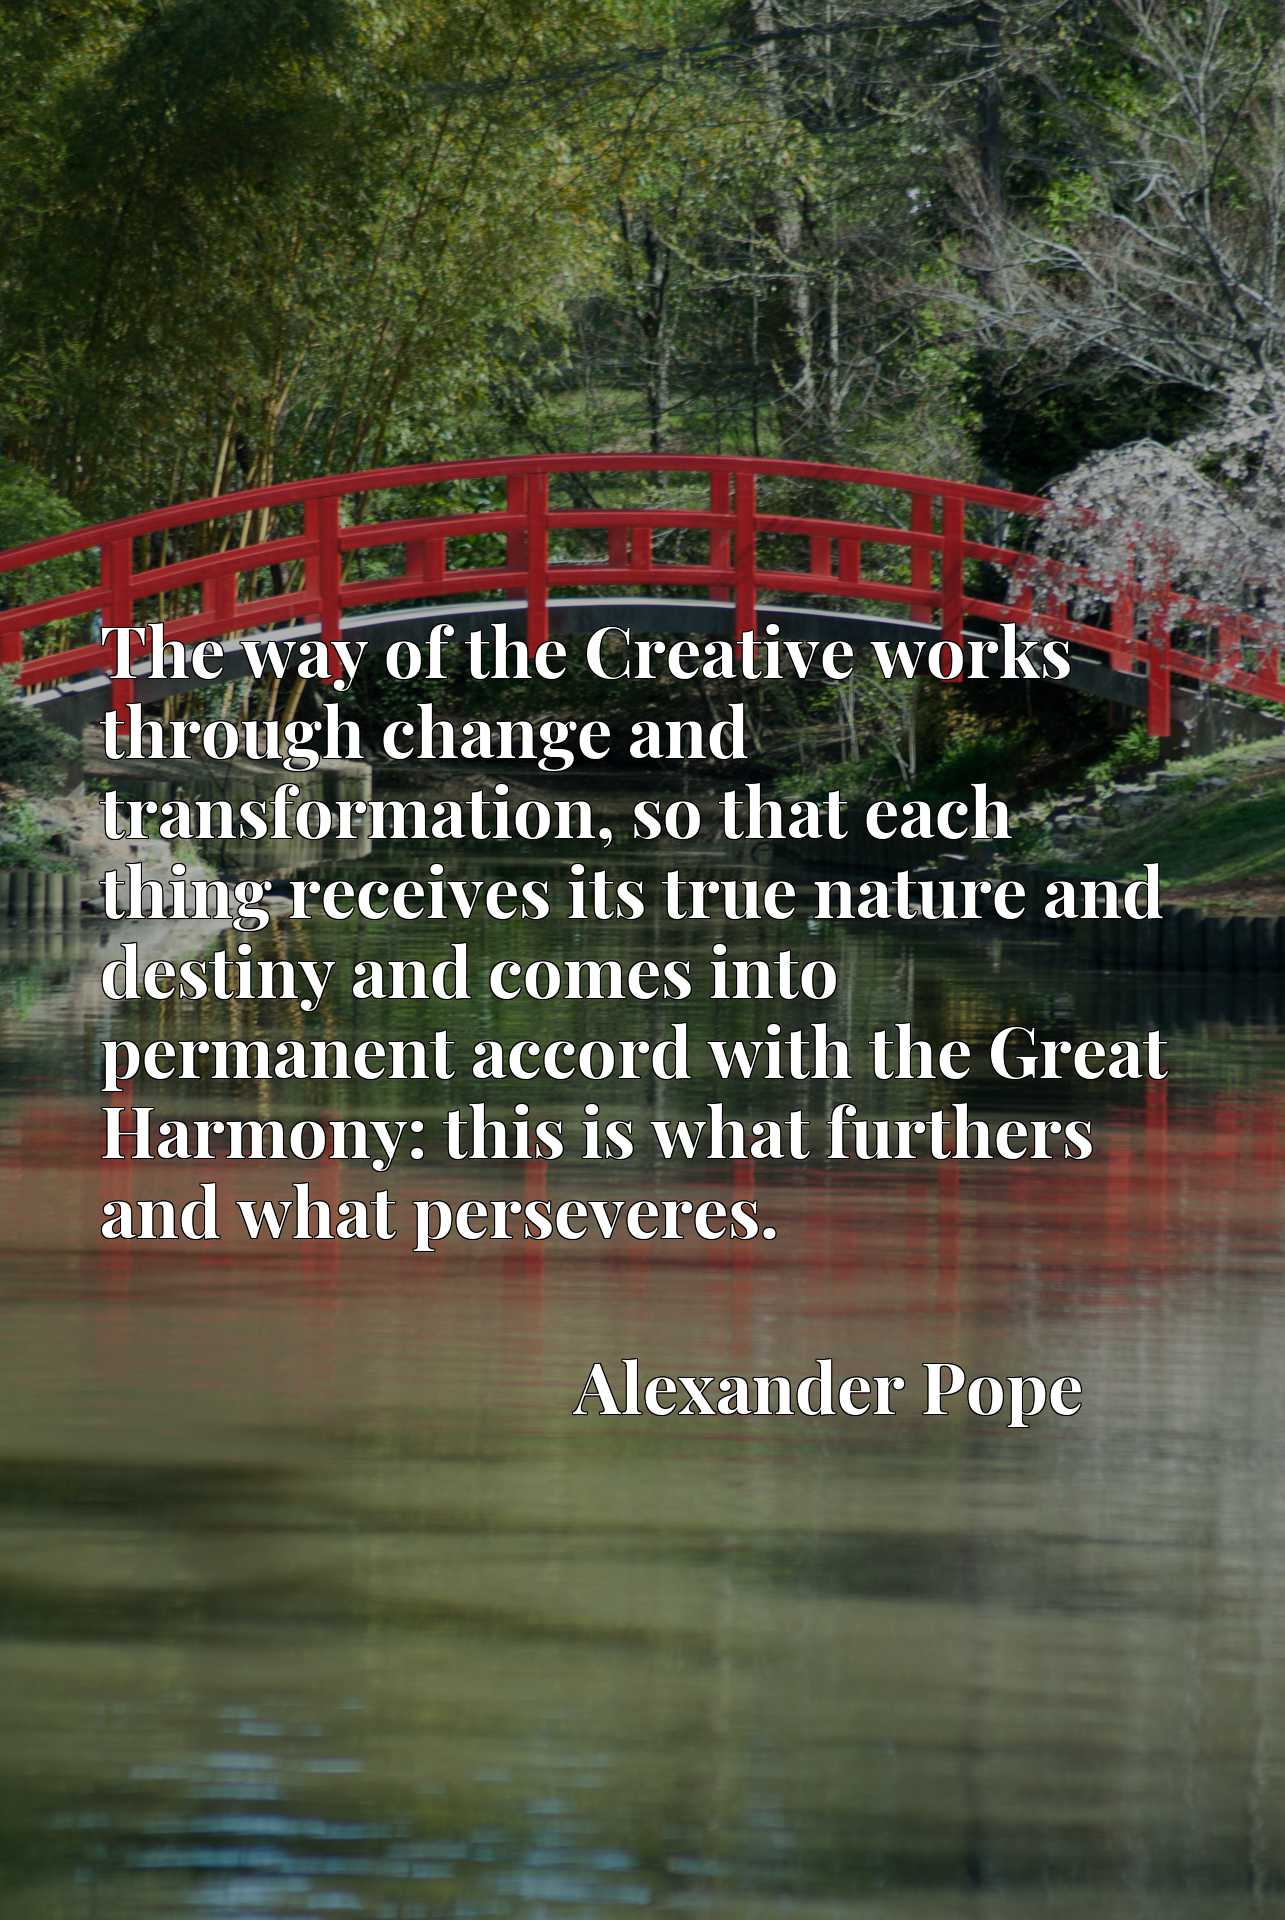 The way of the Creative works through change and transformation, so that each thing receives its true nature and destiny and comes into permanent accord with the Great Harmony: this is what furthers and what perseveres.